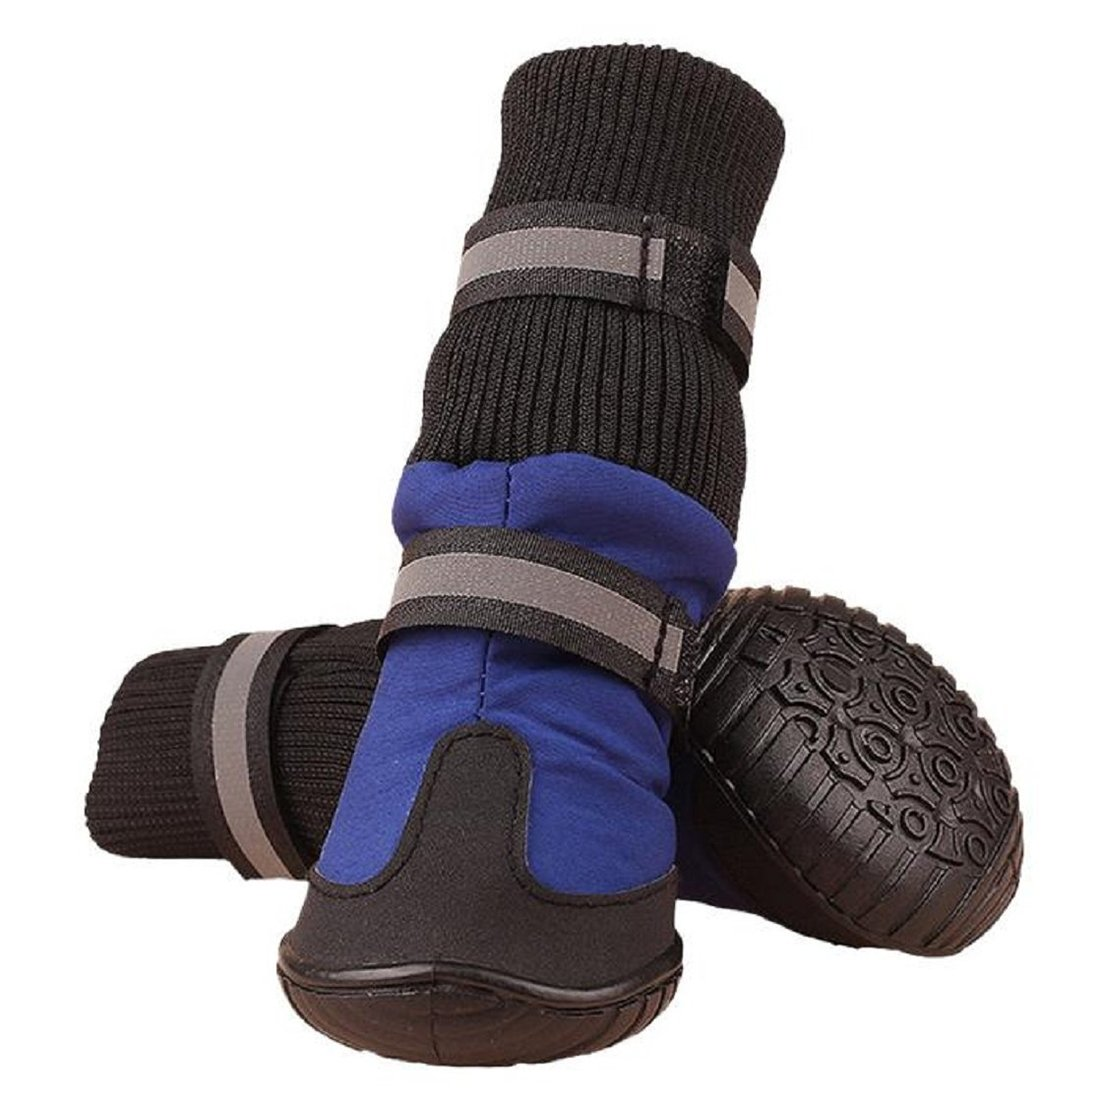 SODIAL(R) Big Dog Soft Waterproof Boots for Large Dog Shoes - Blue XL